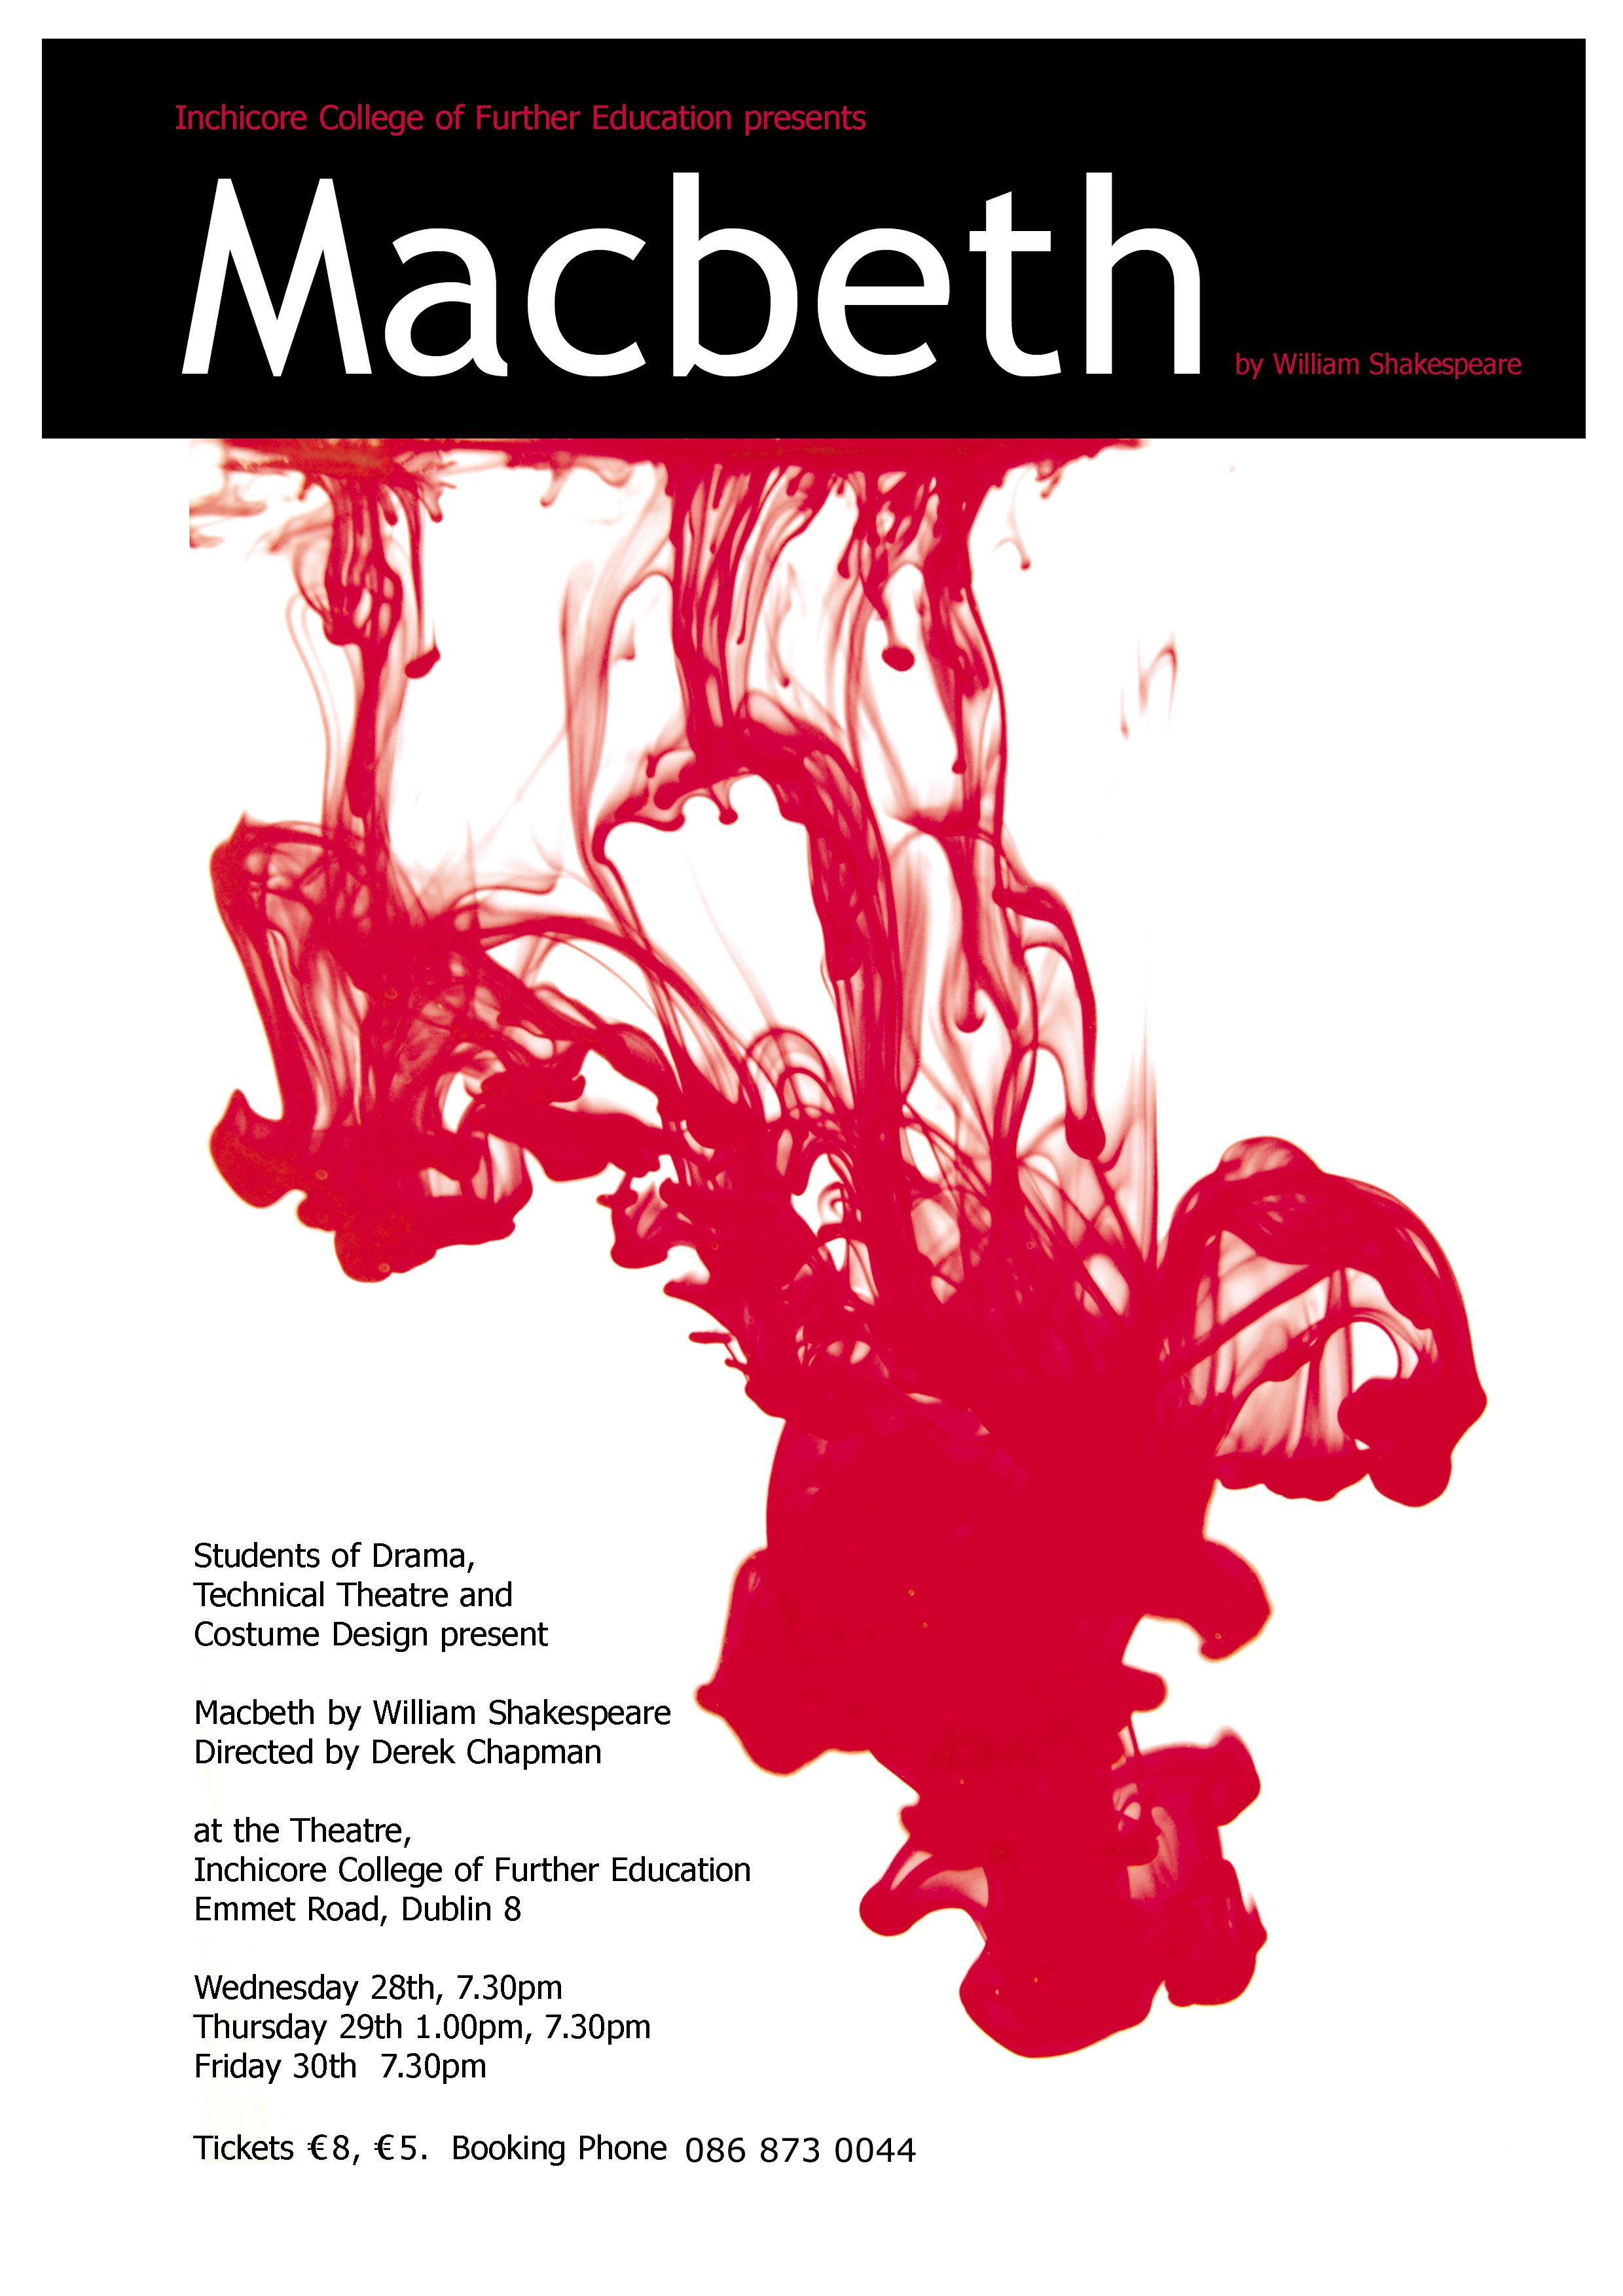 Macbeth Book Cover Ideas ~ Http chicorecollege ie news wp content uploads